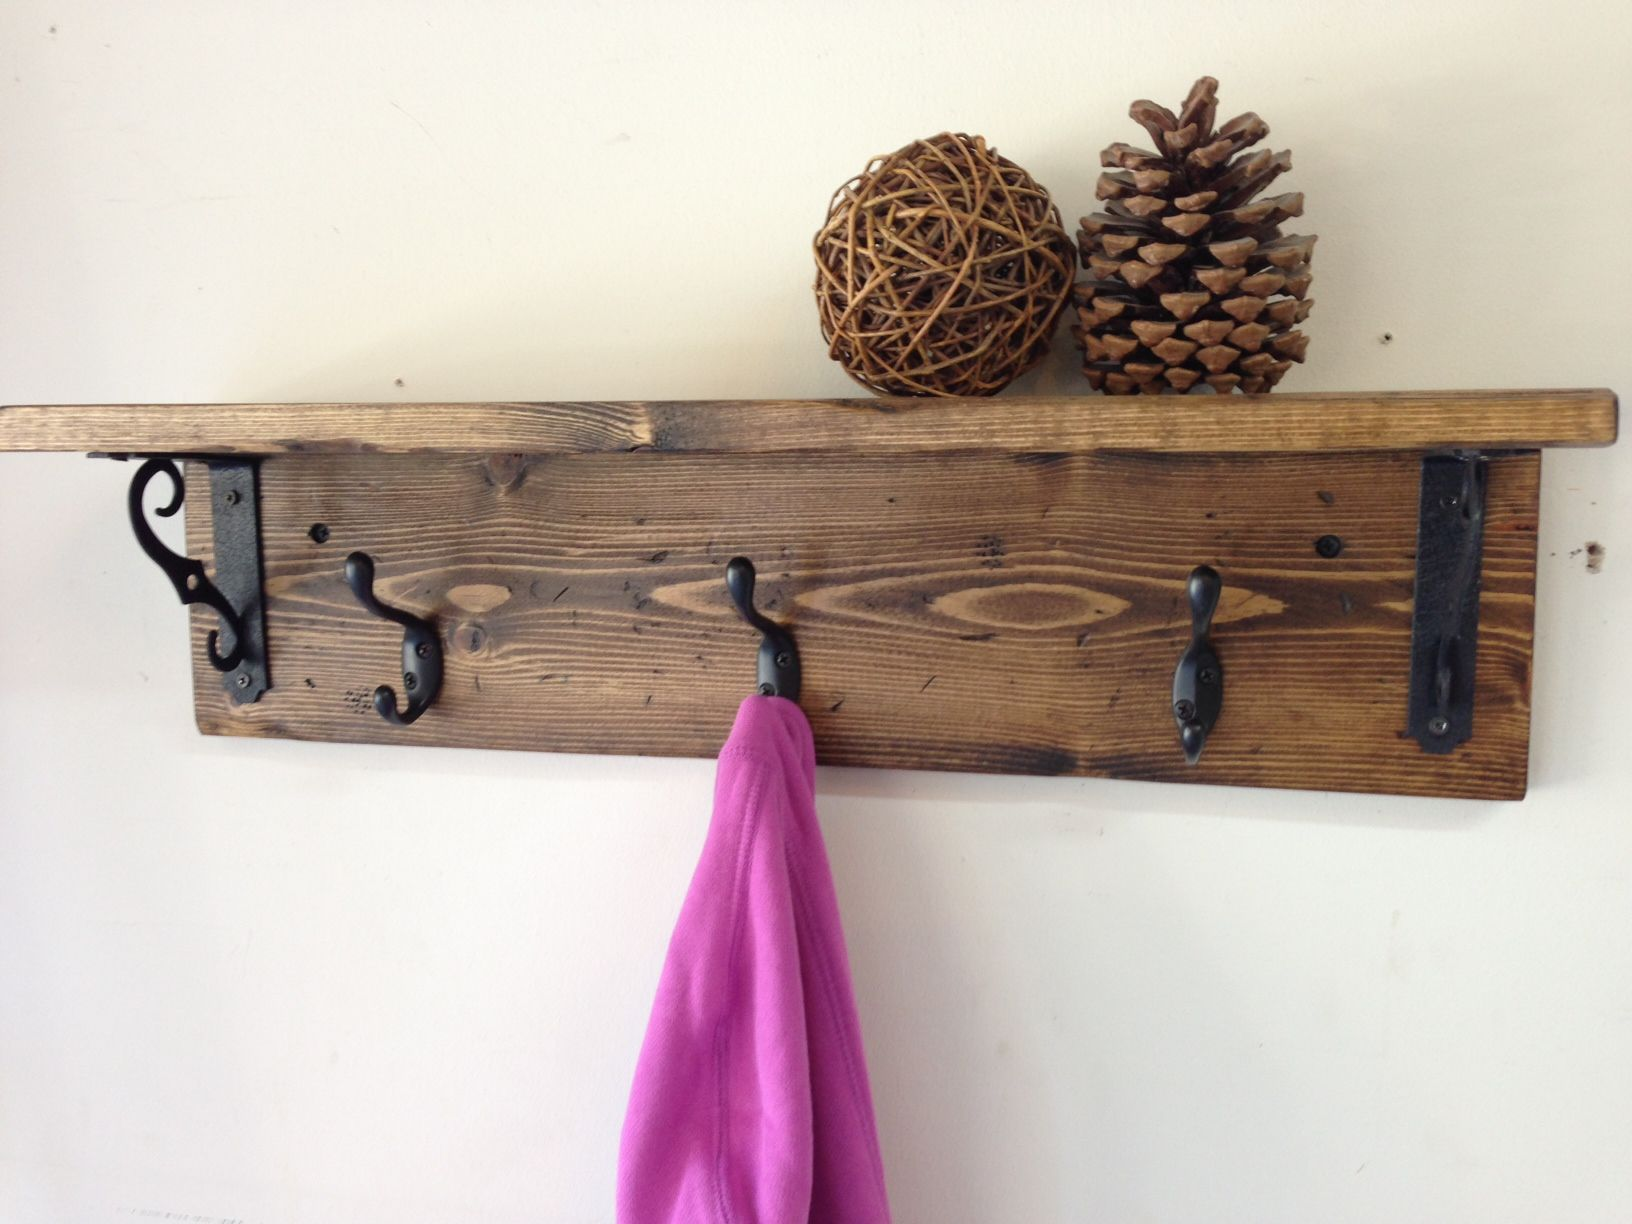 A997ca3dc9bce5e6aa9d840e85fd283a Jpg 1632 1224 Coat Hooks On Wall Diy Coat Rack Wooden Coat Rack